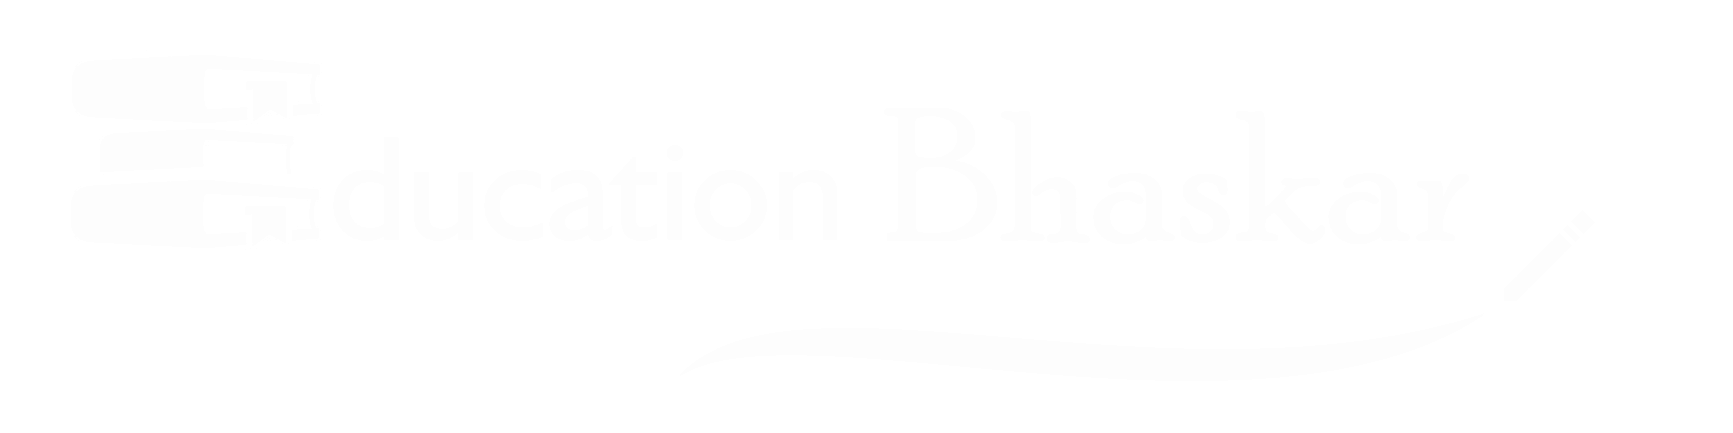 Education Bhaskar logo